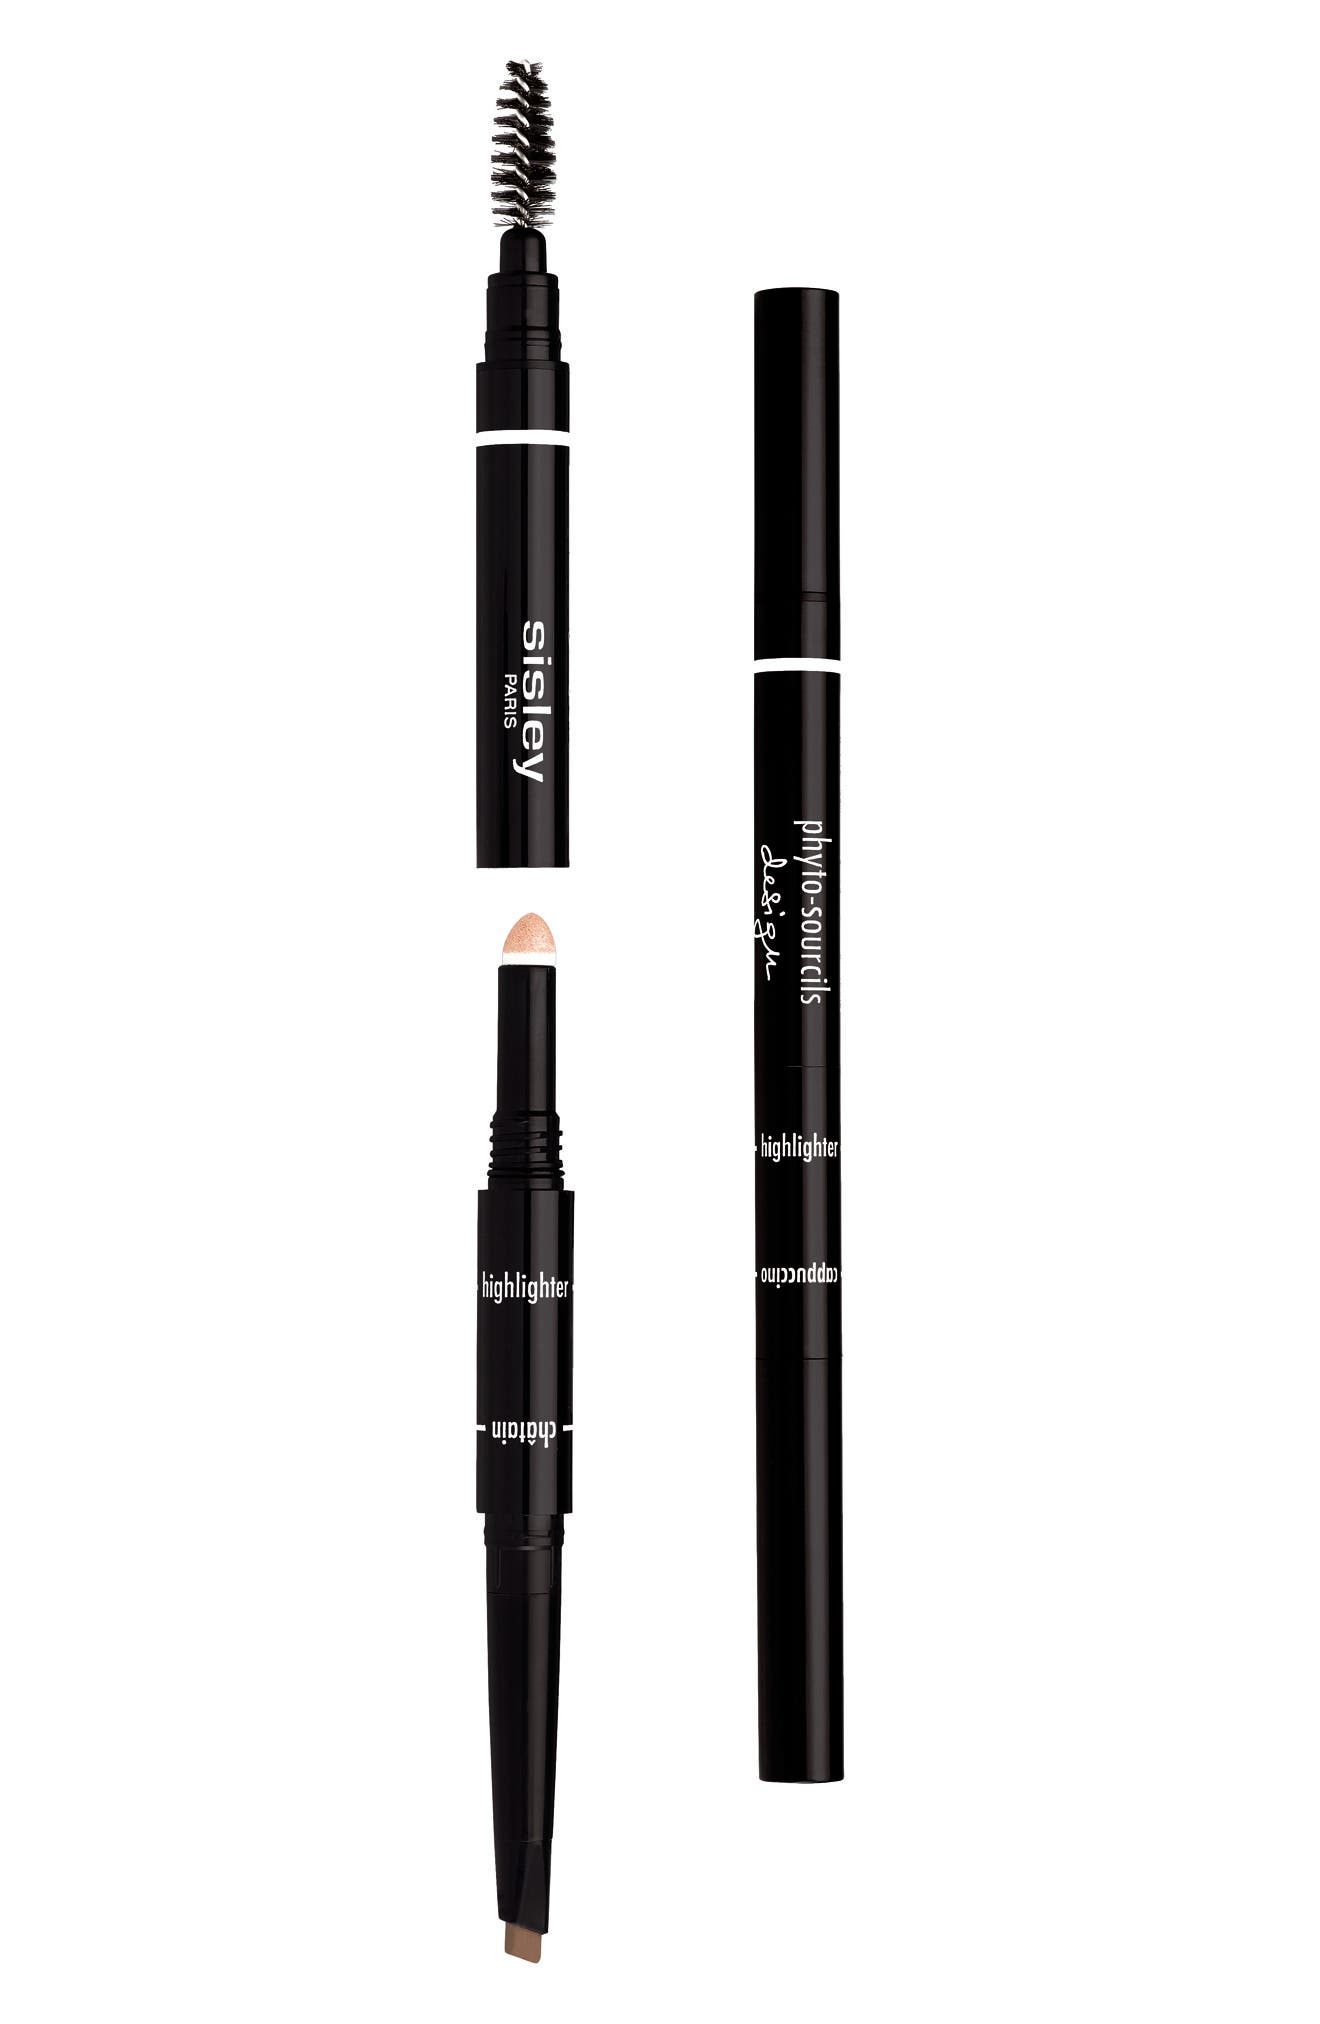 Phyto-Sourcils Design 3-in-1 Eyebrow Pencil,                             Main thumbnail 1, color,                             CHATAIN